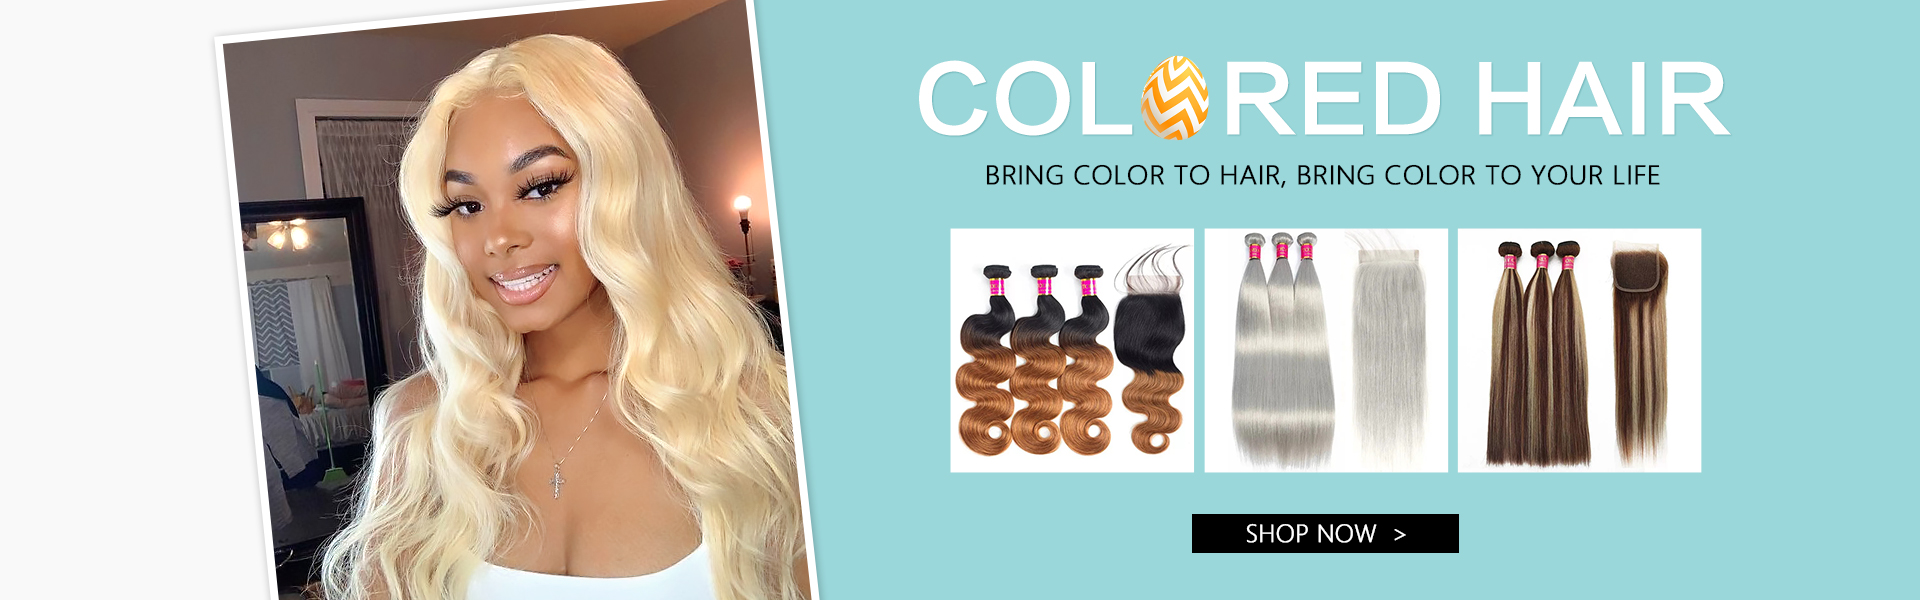 https://www.todayonlyhair.com/colored_product_list.html